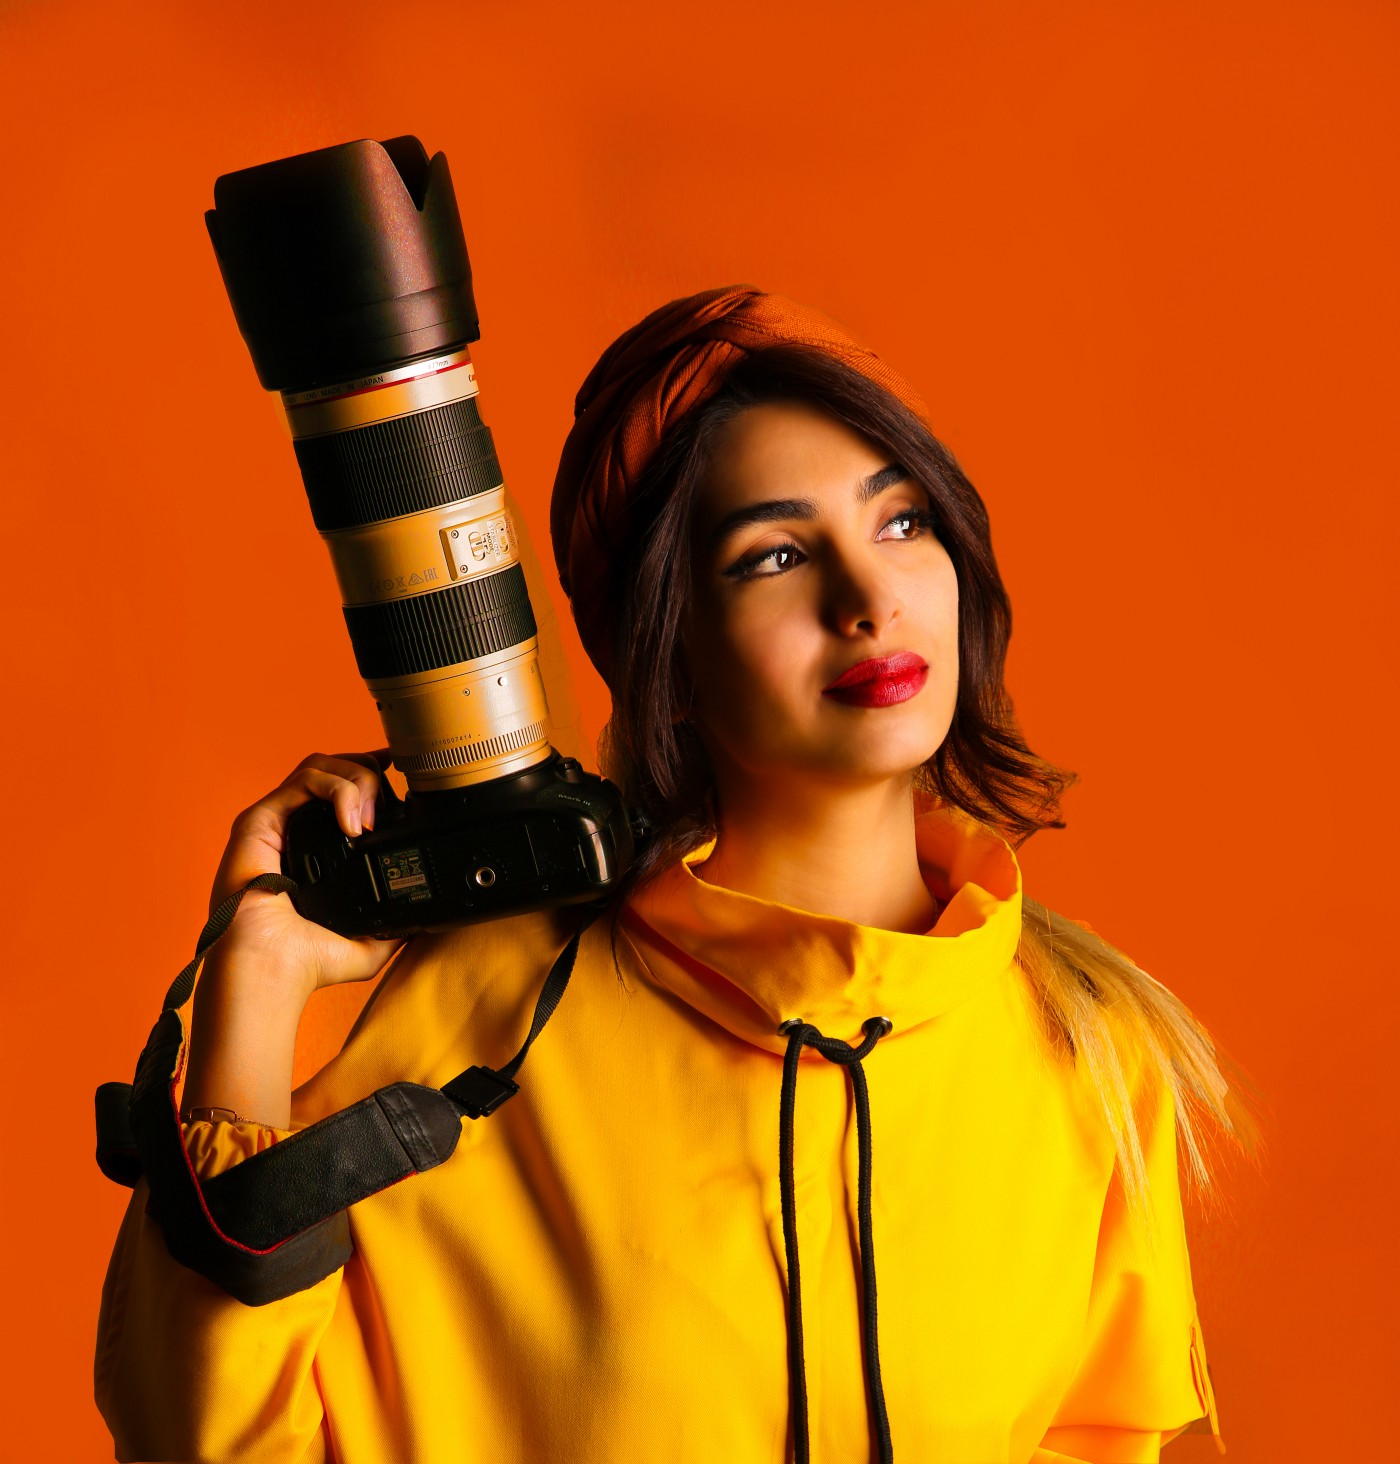 A woman in a yellow jacket and red head scarf holding a camera with a large lens in a vibrant reddish orange background